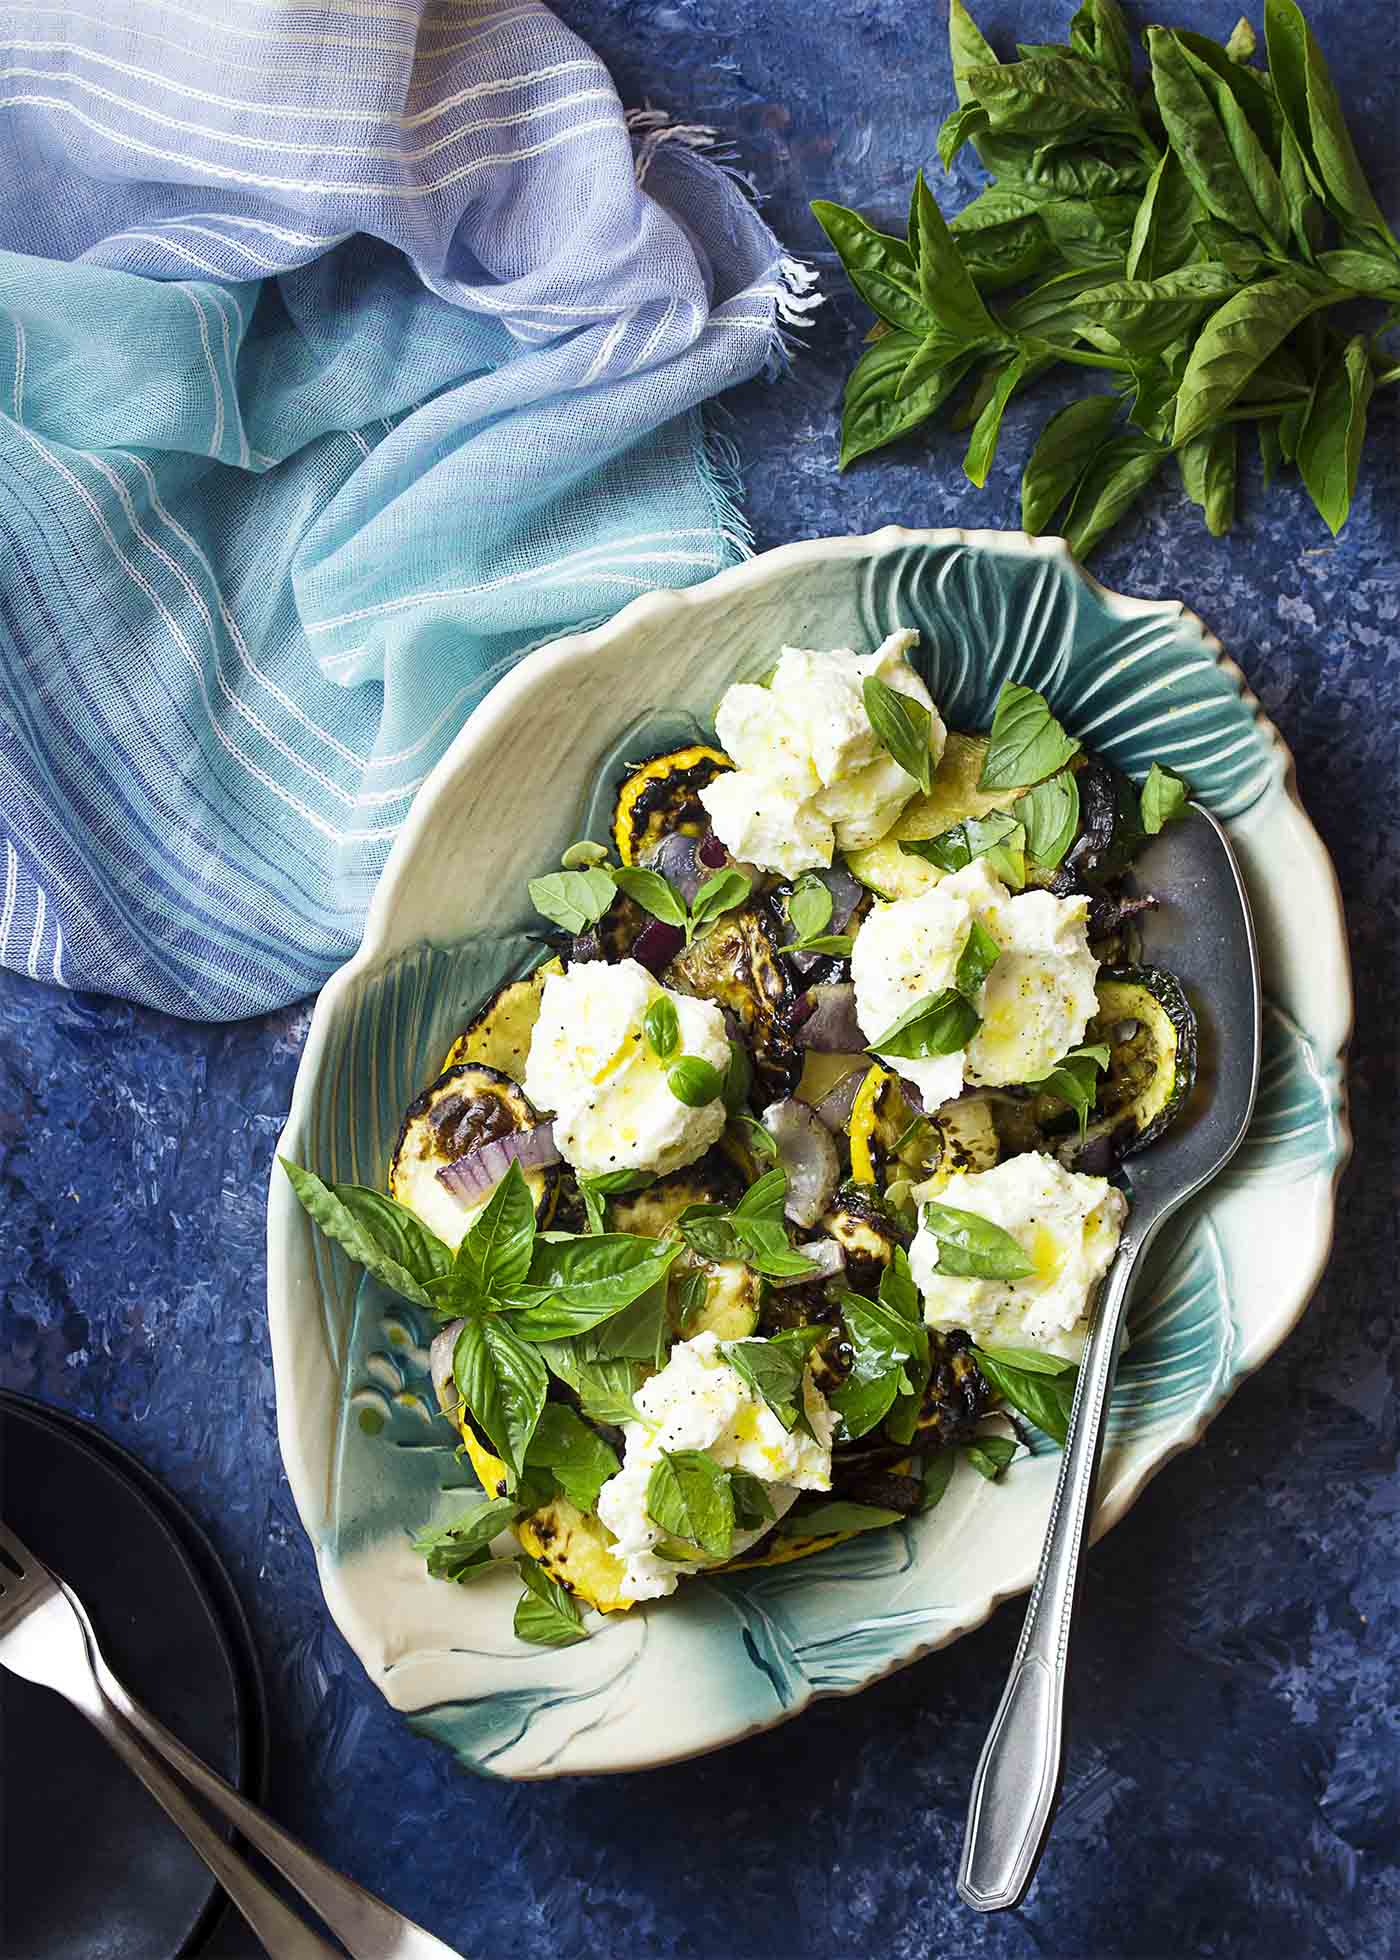 Serving dish of grilled zucchini salad with lemon ricotta and fresh basil over the top.